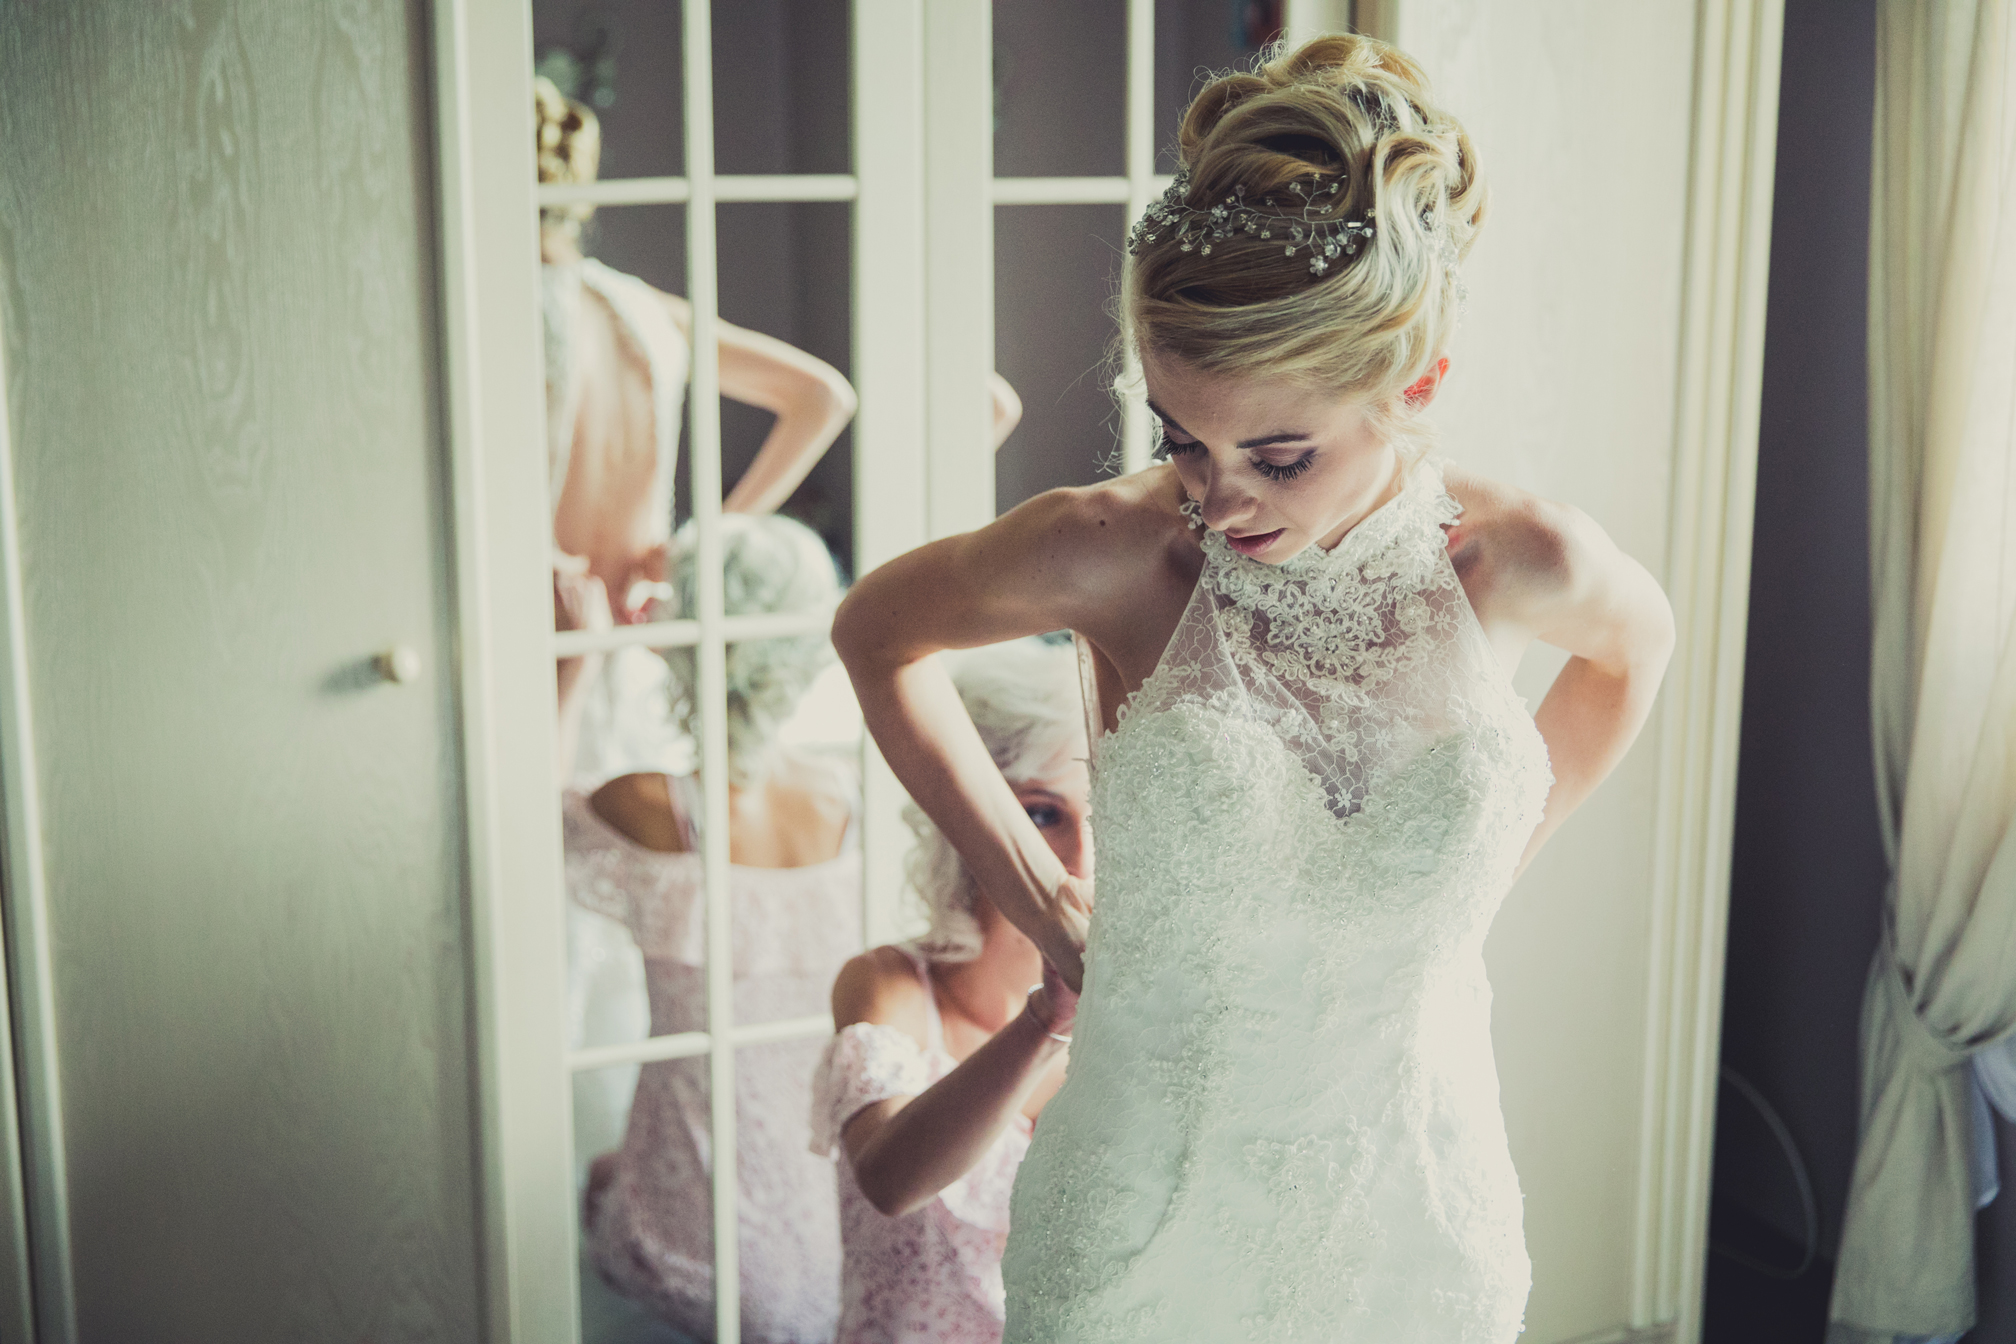 Magnificence Photographie Video Mariage Occitanie Aveyron Toulouse 00009